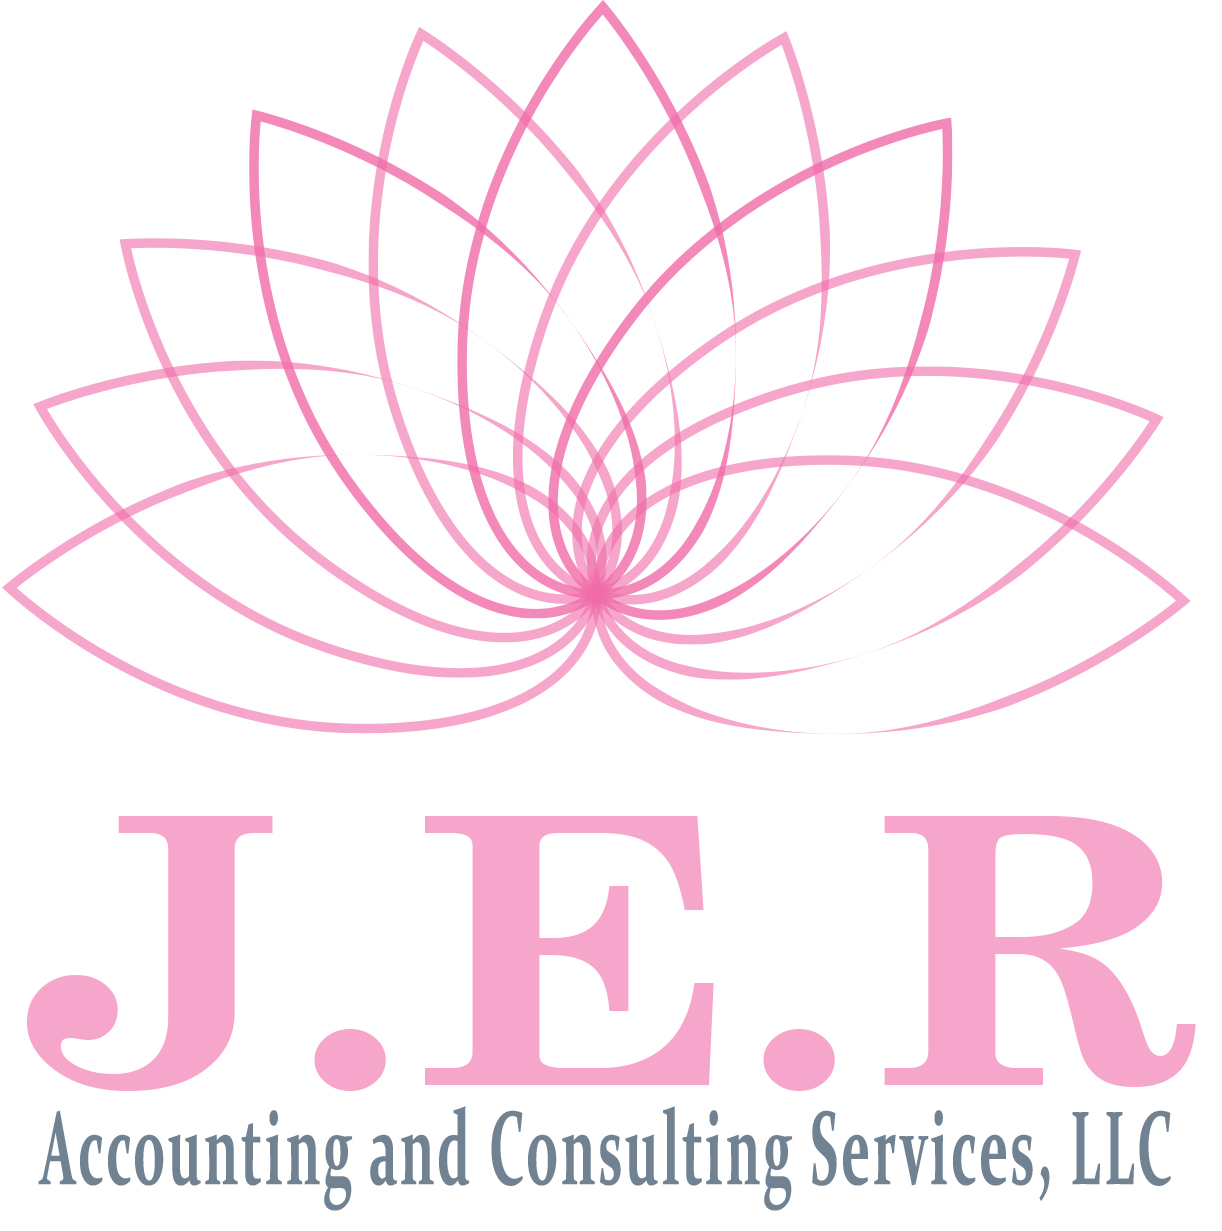 J.E.R Accounting and Consulting Services primary image